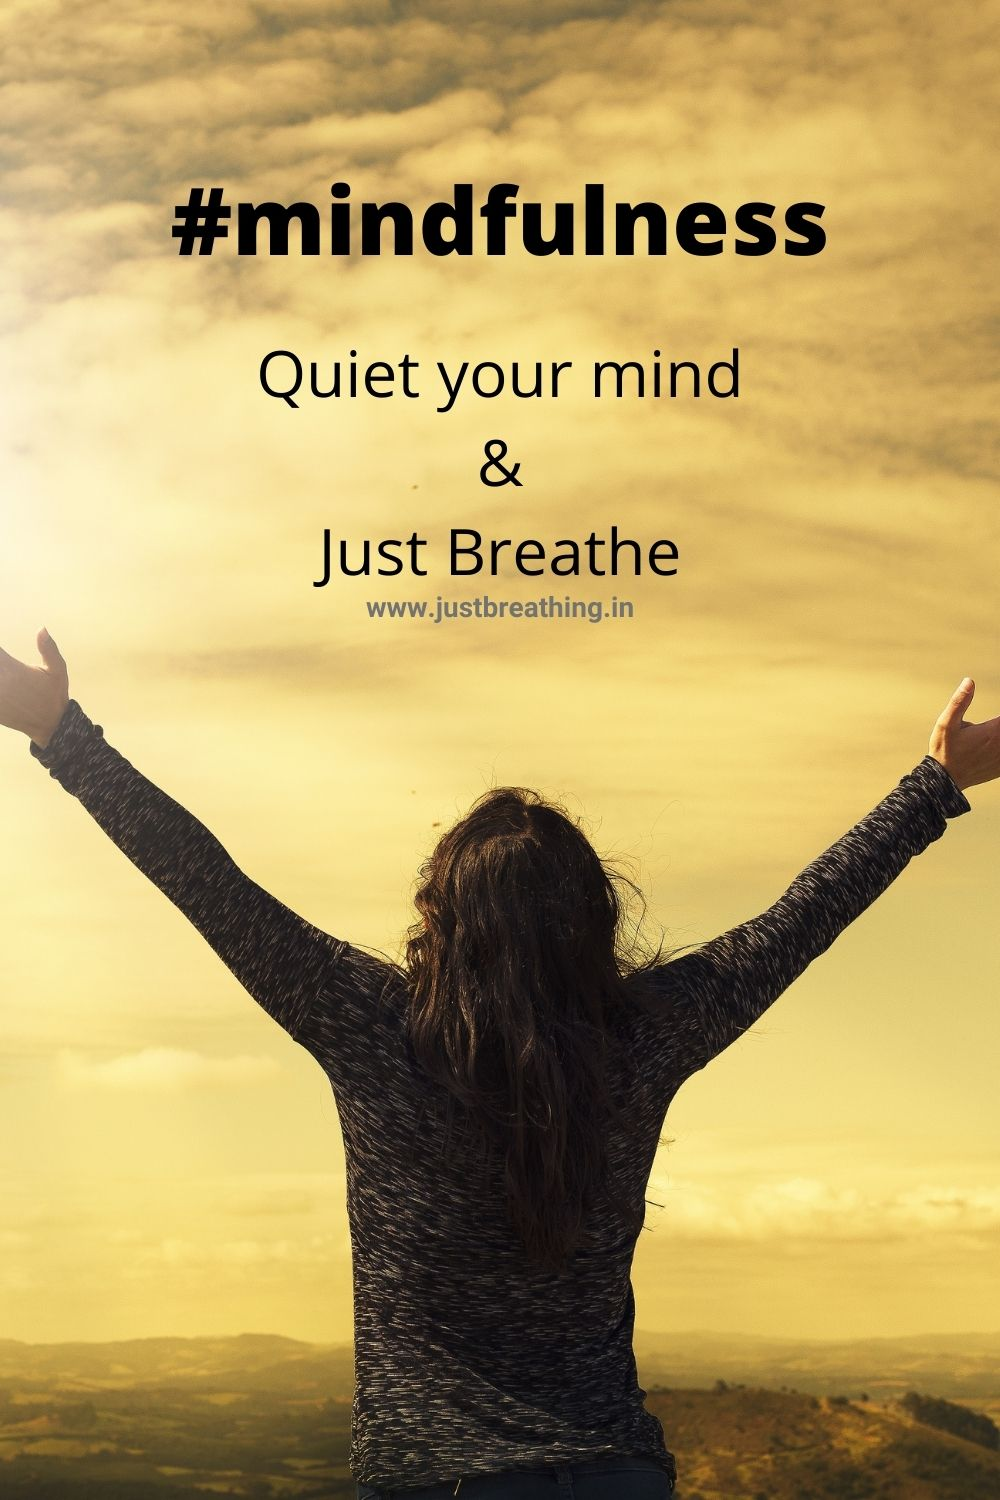 mindfulness hashtags to quiet your mind and just breathe. Best hashtags of mindfulness